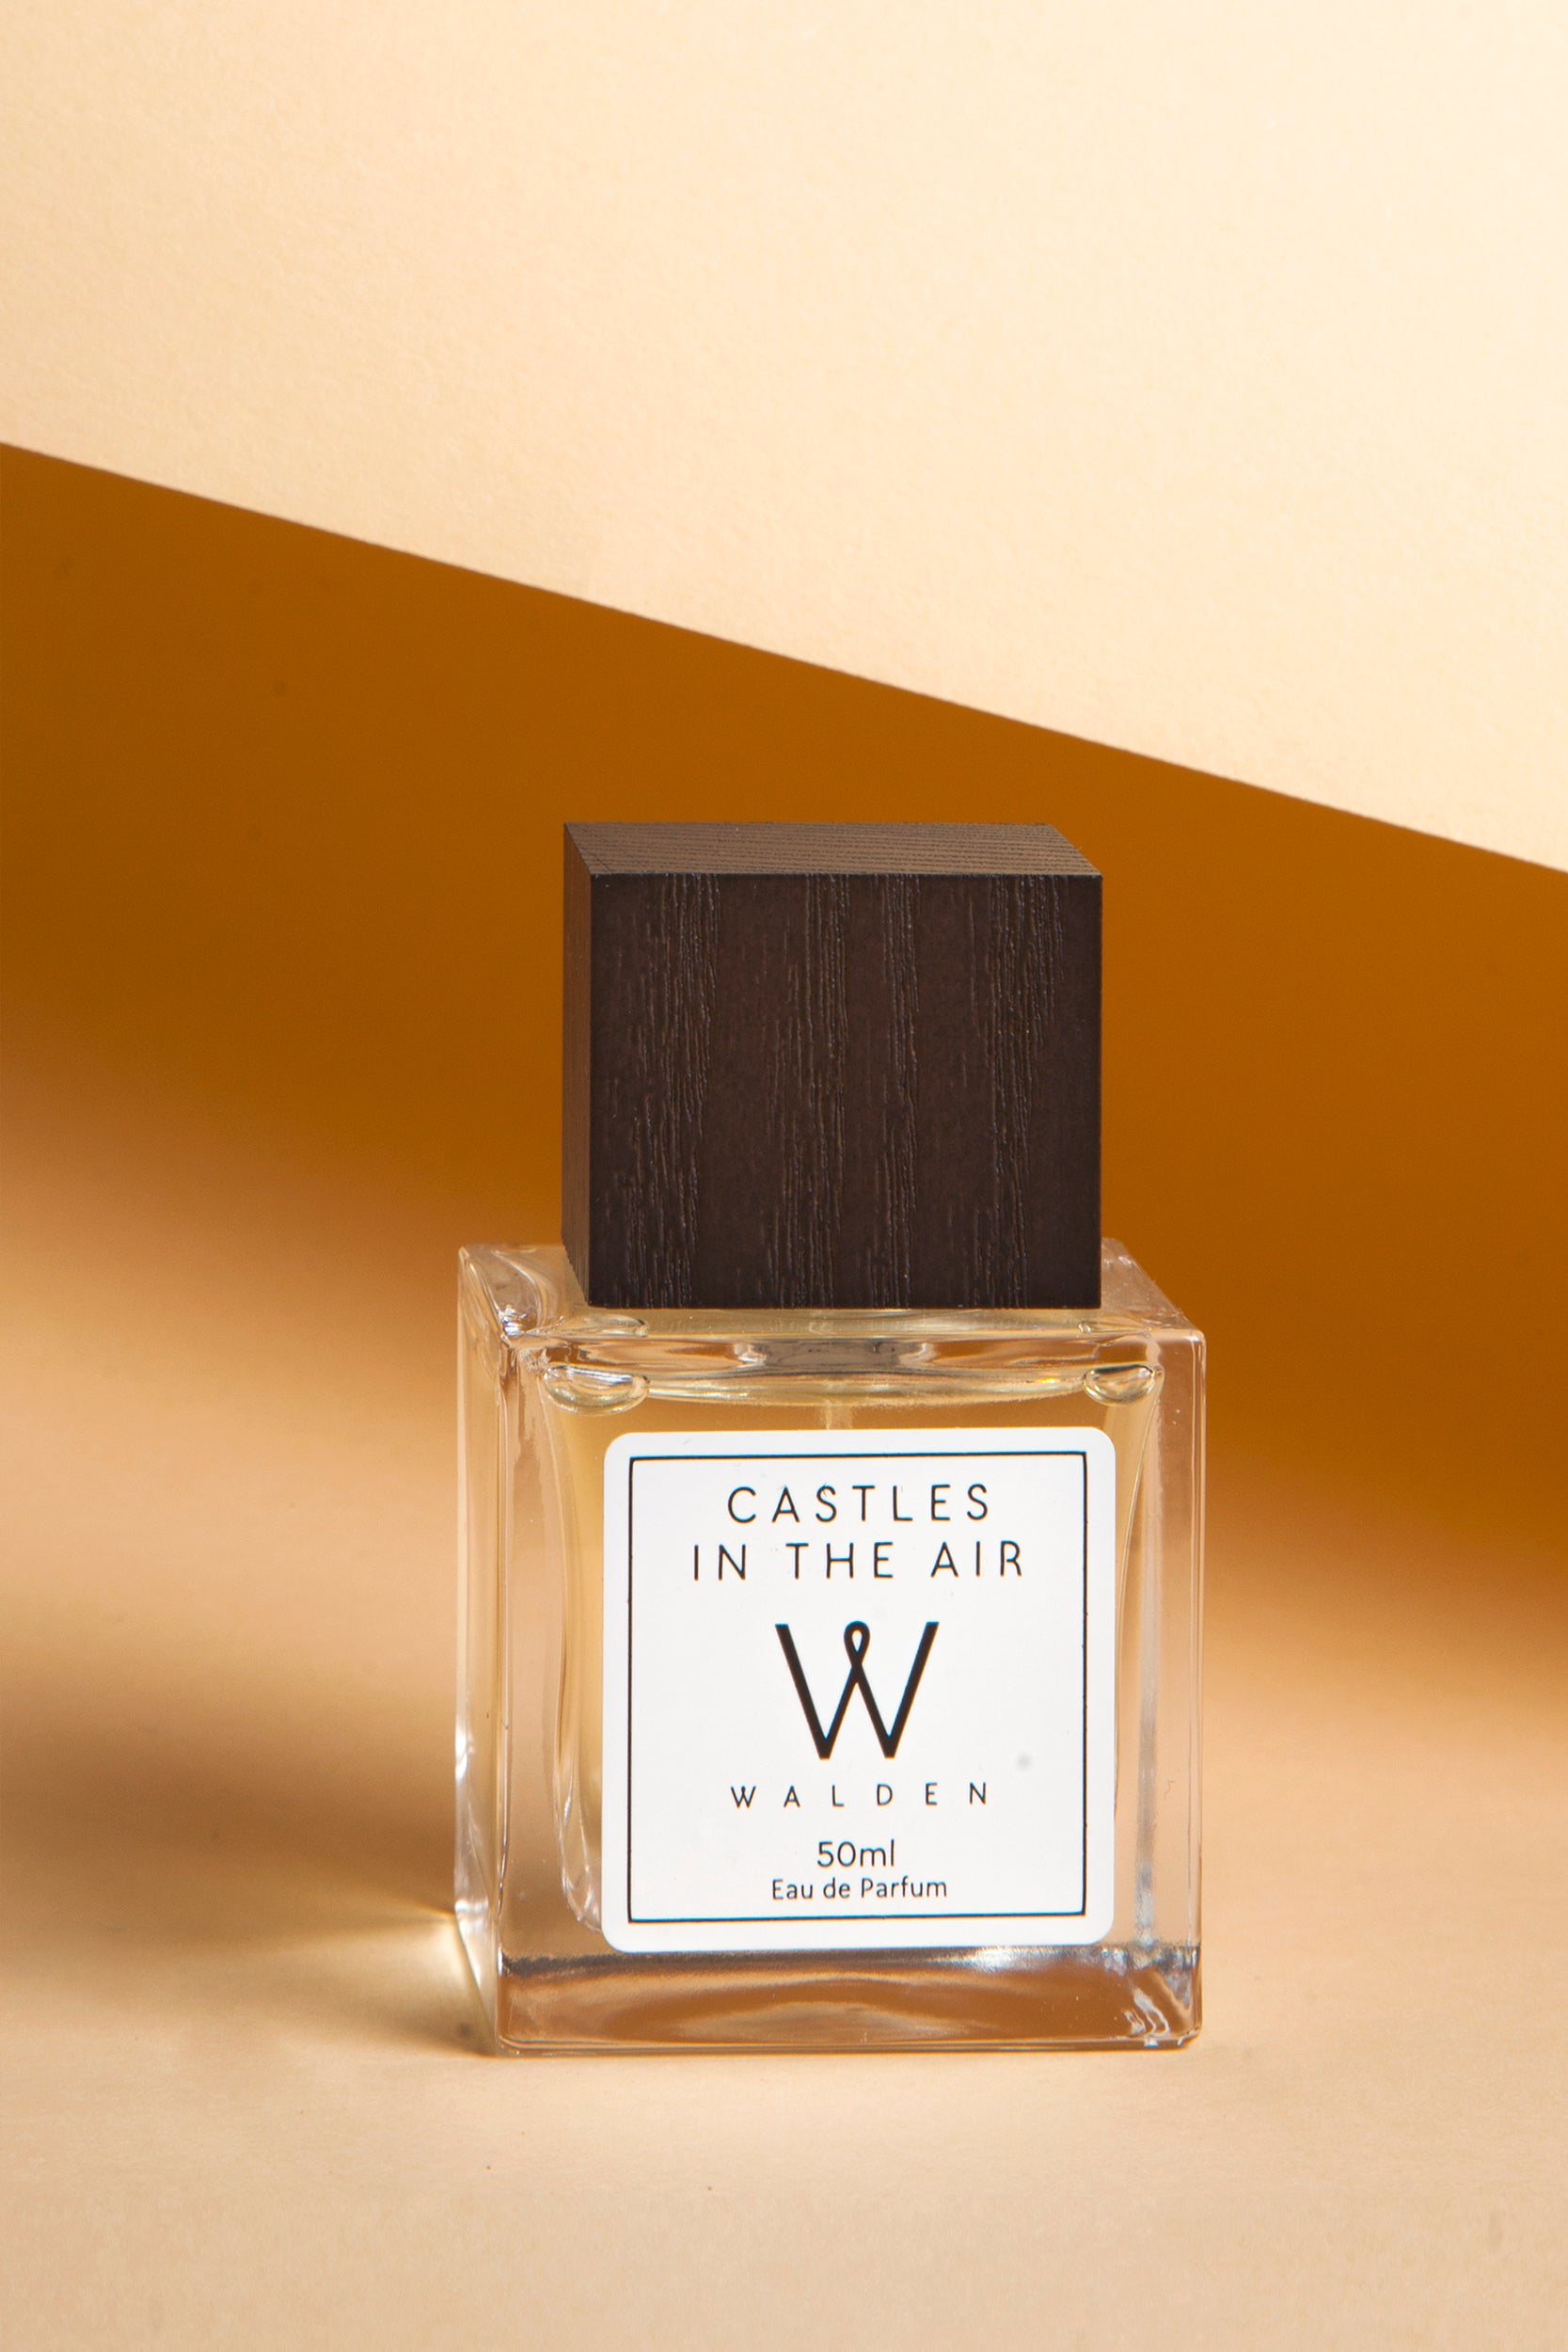 Walden's Castles in the Air | Beauty | Walden Perfumes | [product_tag] - Fair Bazaar Ethical Living